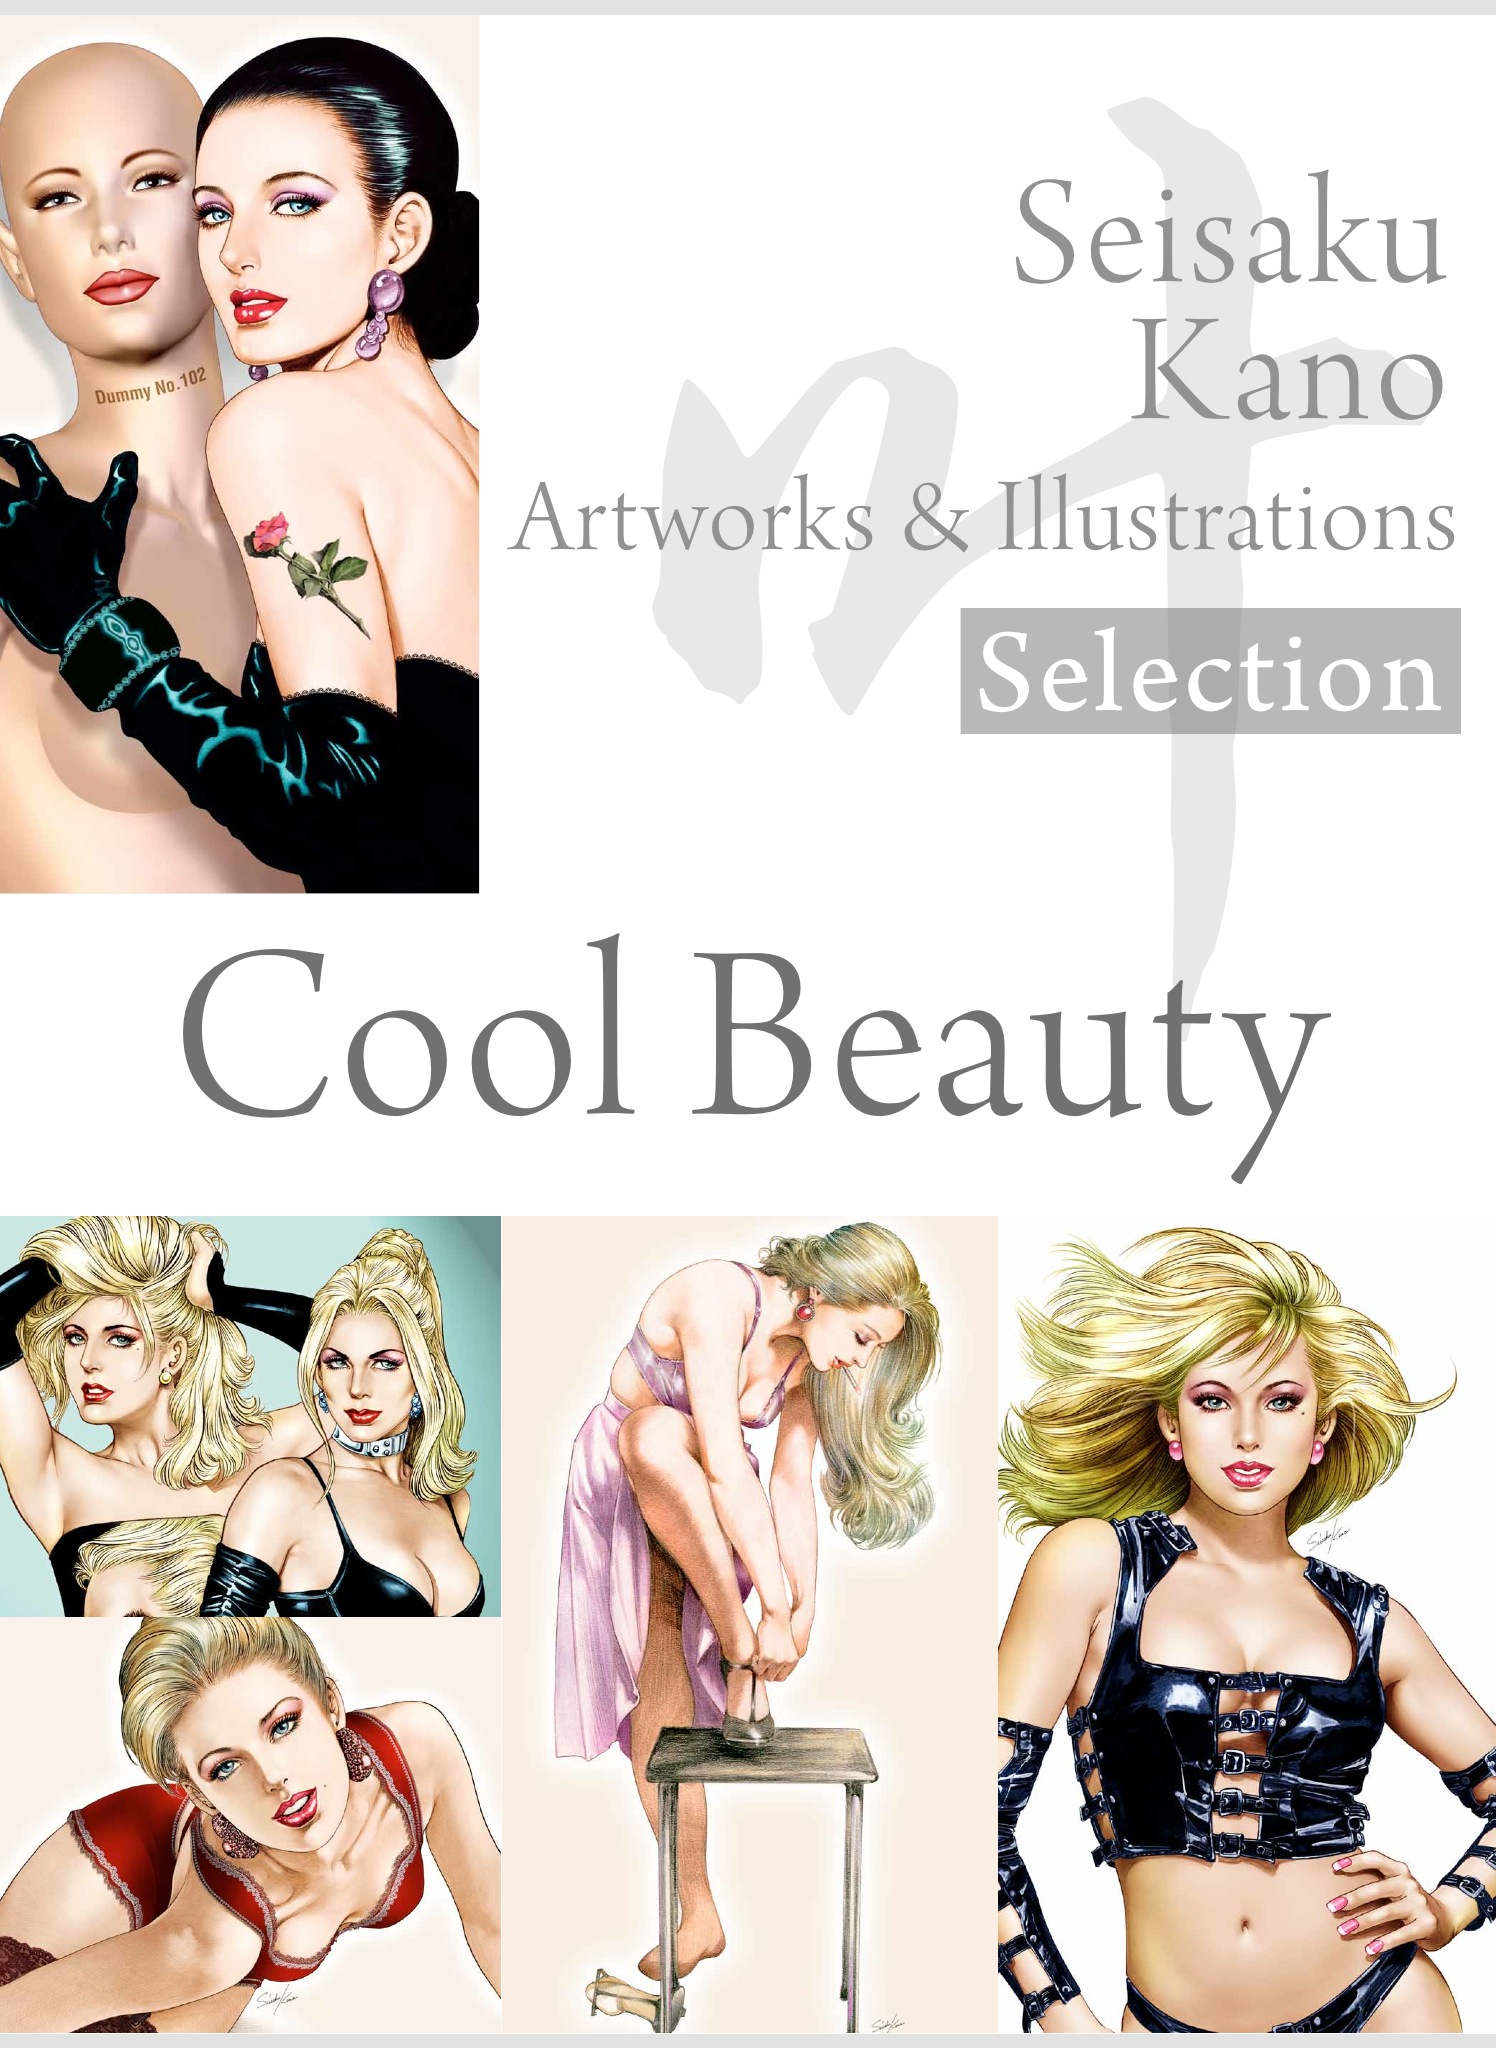 叶精作 作品集①(分冊版 1/3)Seisaku Kano Artworks & illustrations Selection「Cool Beauty」